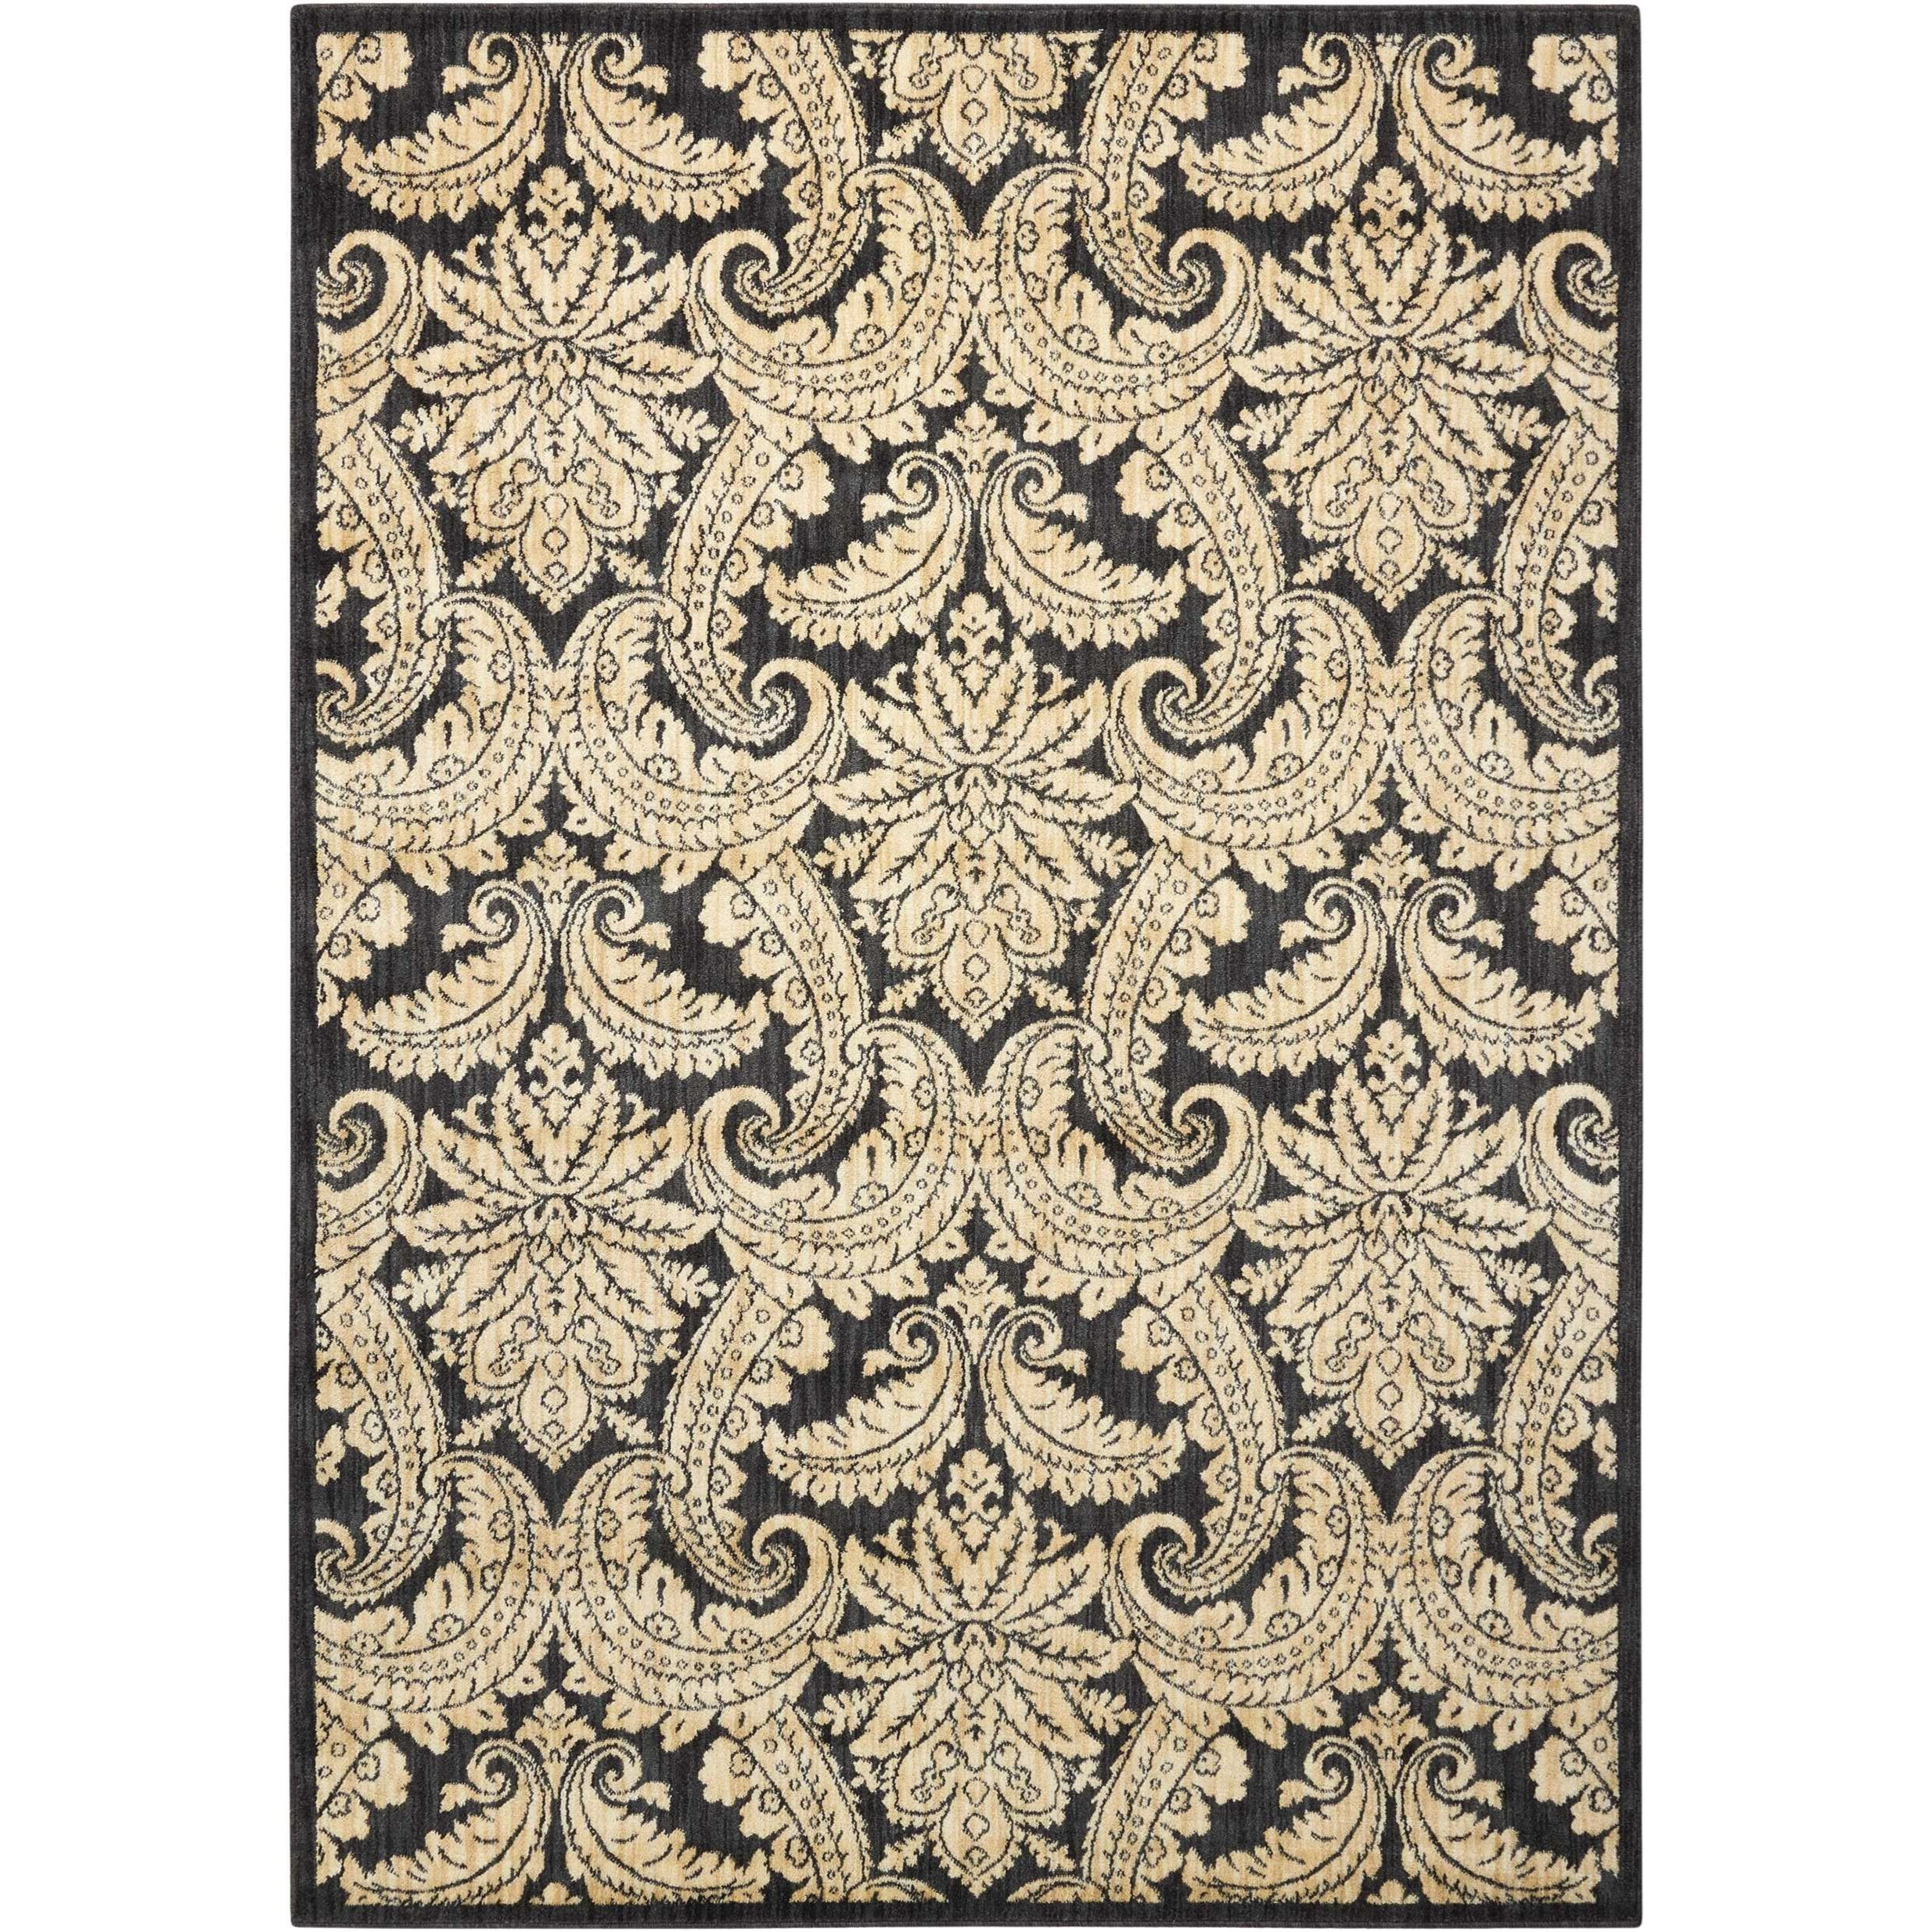 "9'3"" x 12'9"" Black/Beige Rectangle Rug"